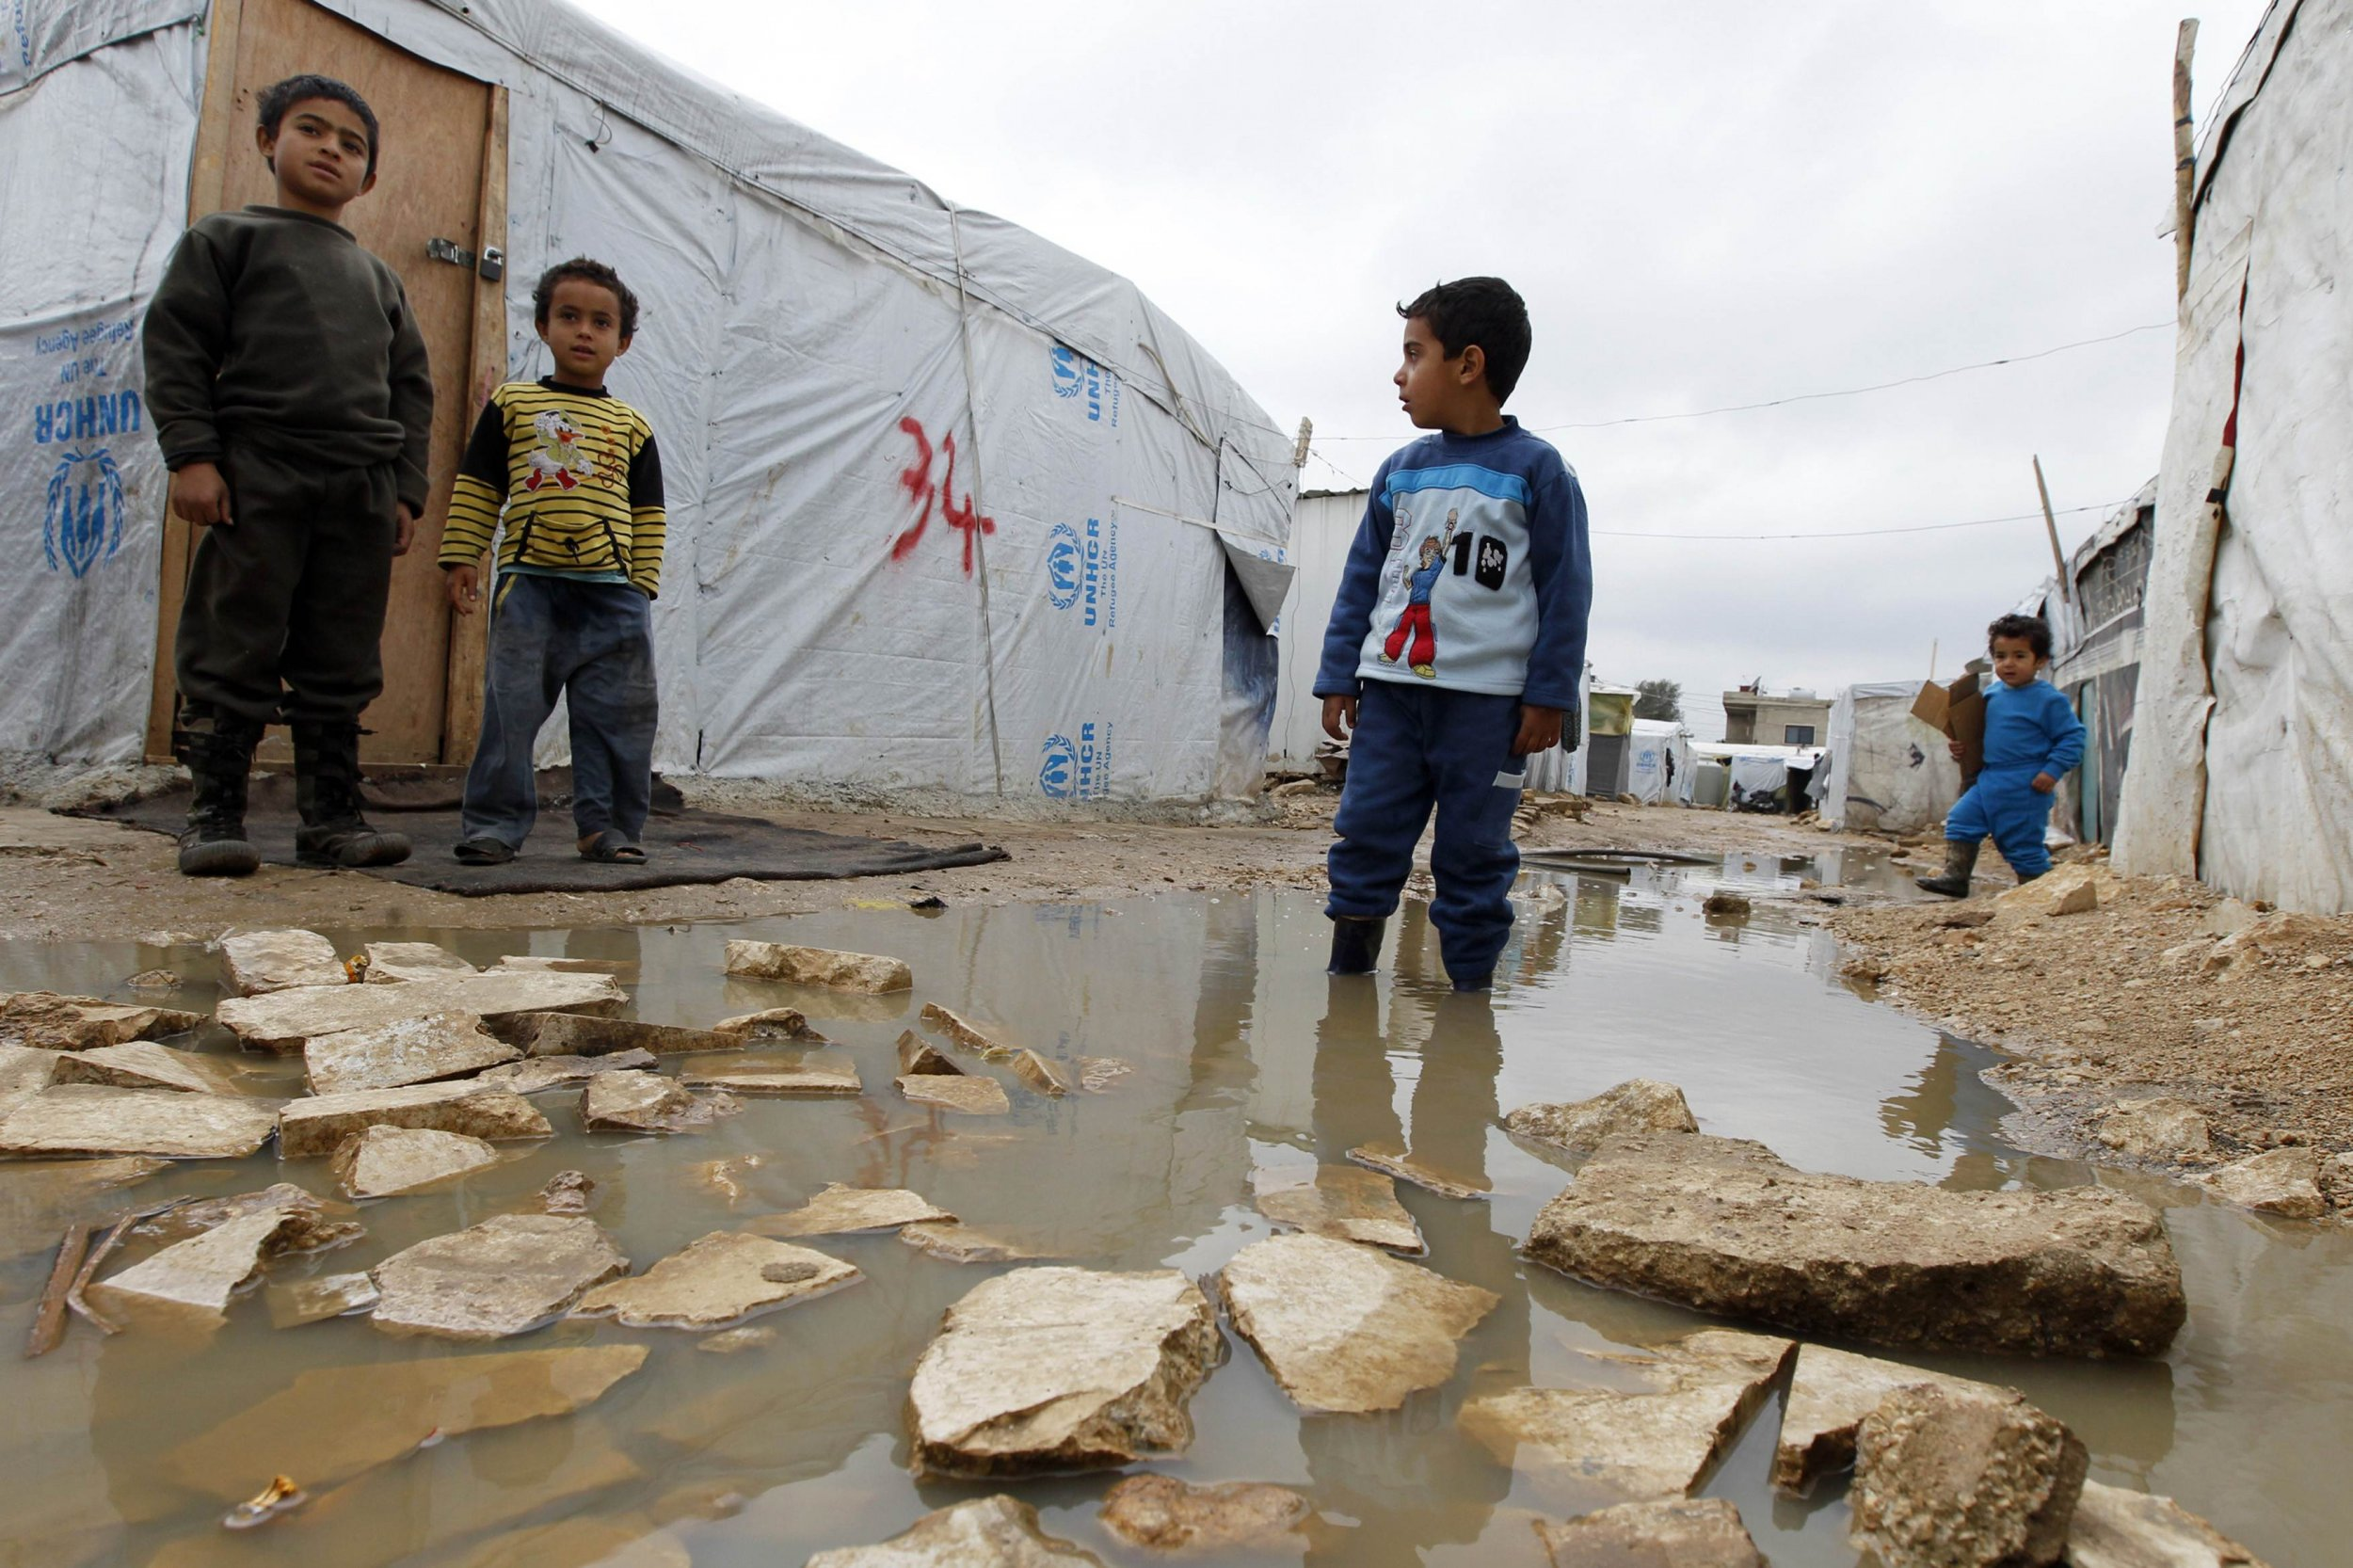 the refugee crisis and the civil wars in the arab nations The syrian civil war, which has devastated the entire country of syria and its neighbors, is a complex conflict that involves several nations, rebel groups and terrorist organizations.